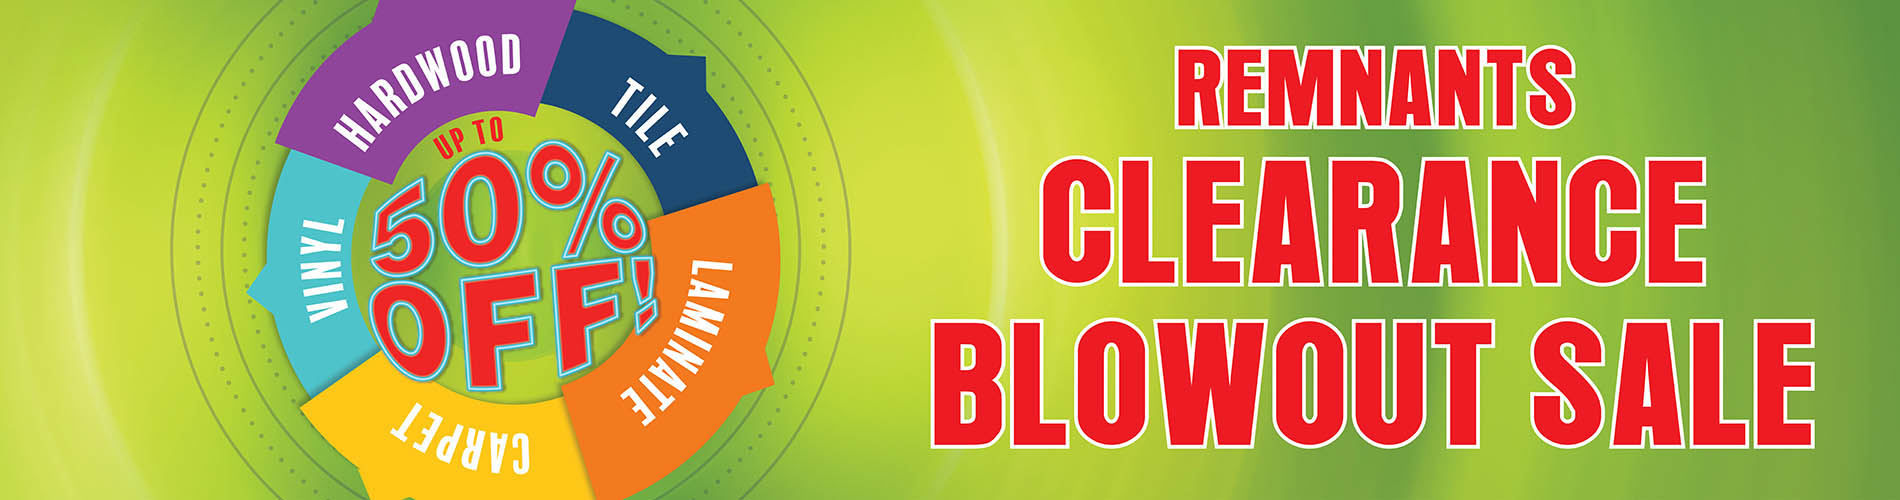 Up To 50 Off Flooring Remnants Clearance Blowout Sale